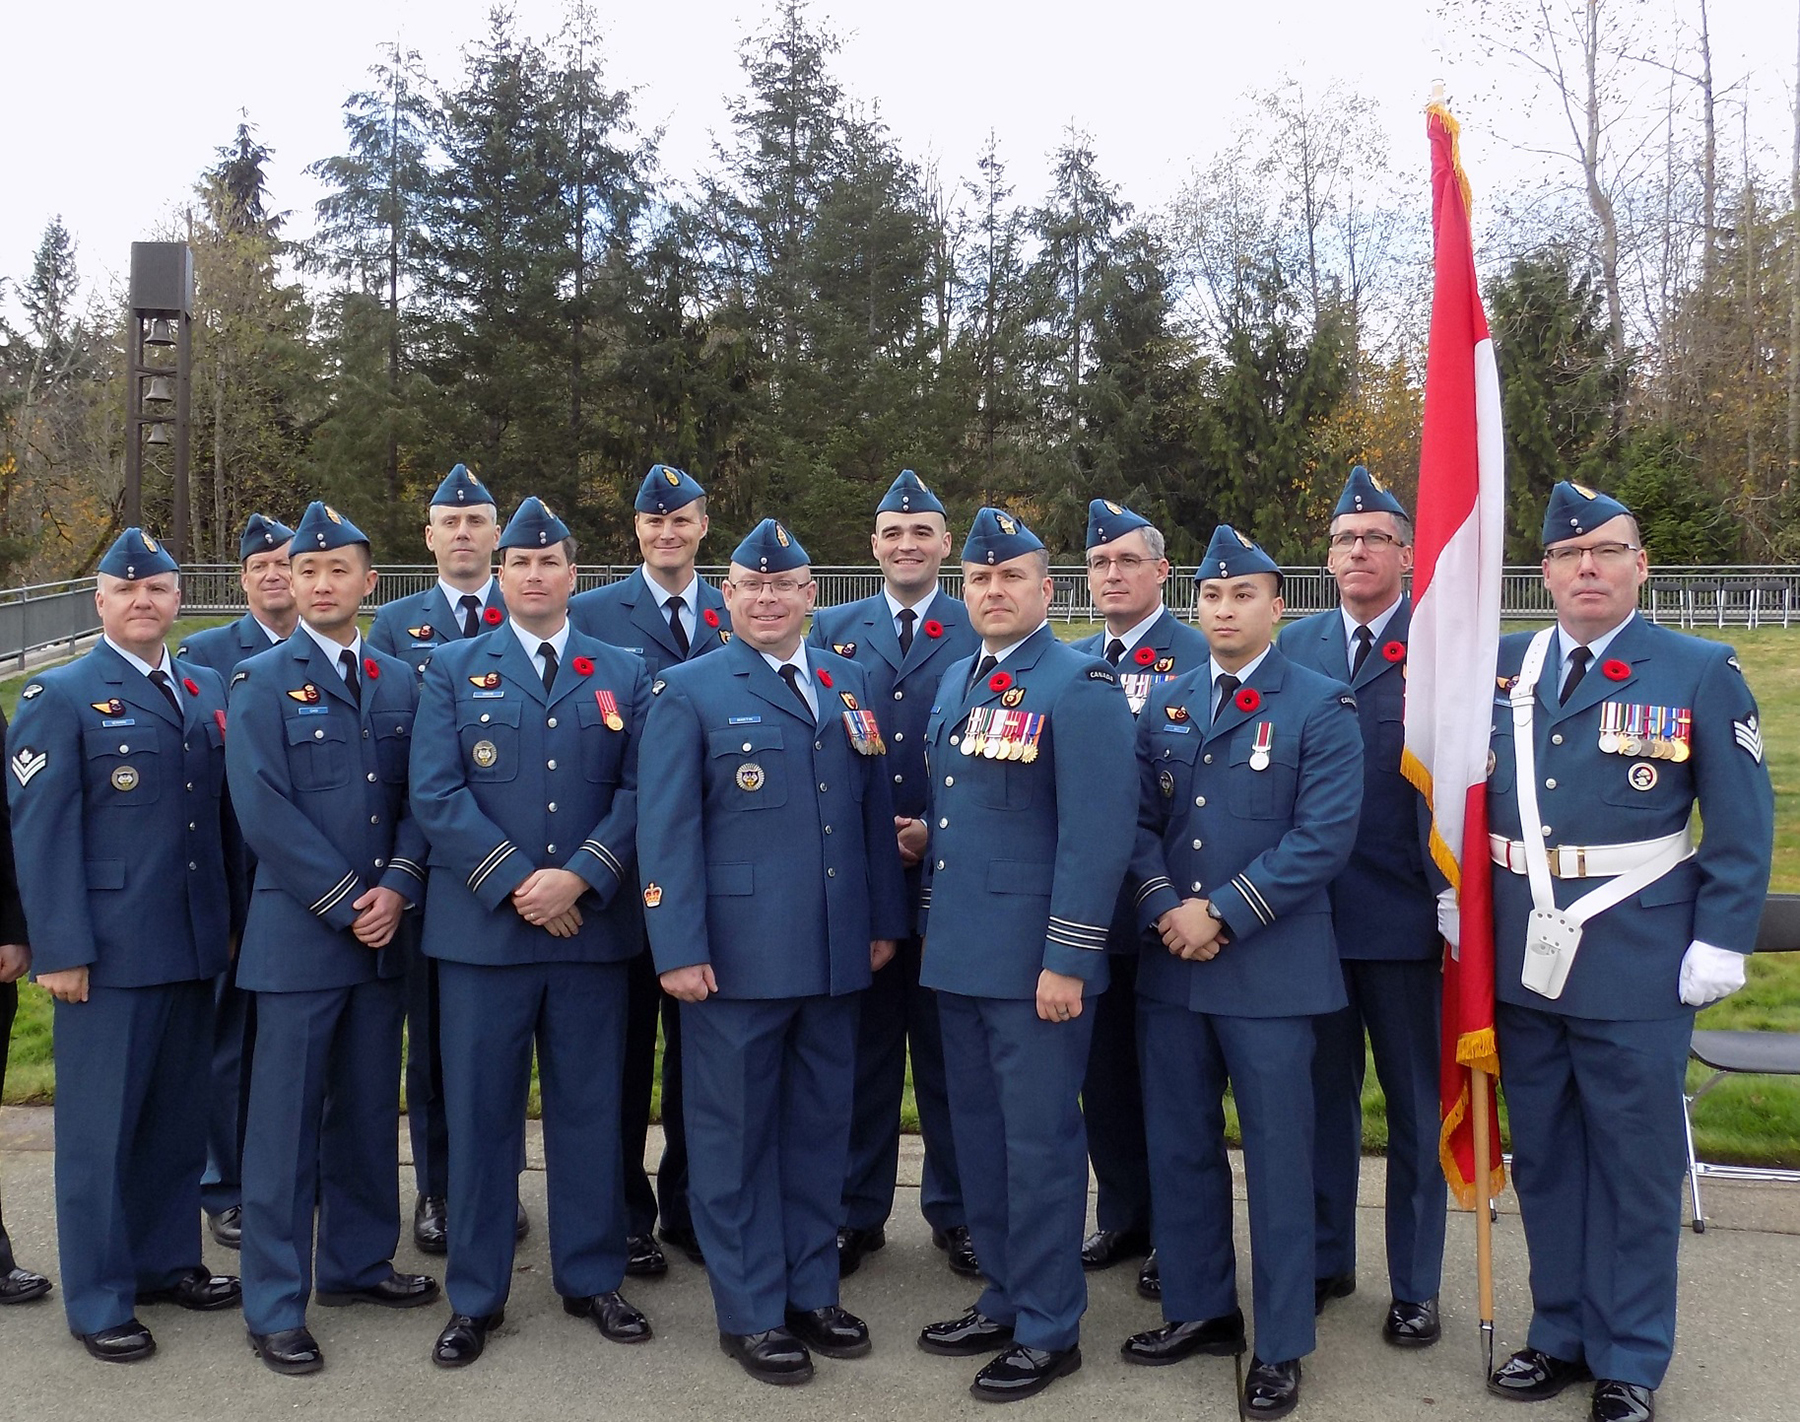 Royal Canadian Air Force members serving at Joint Base Lewis-McChord in Washington State attend the Veteran's Day ceremony held at Tahoma National Cemetery on November 11th 2016. PHOTO: DND